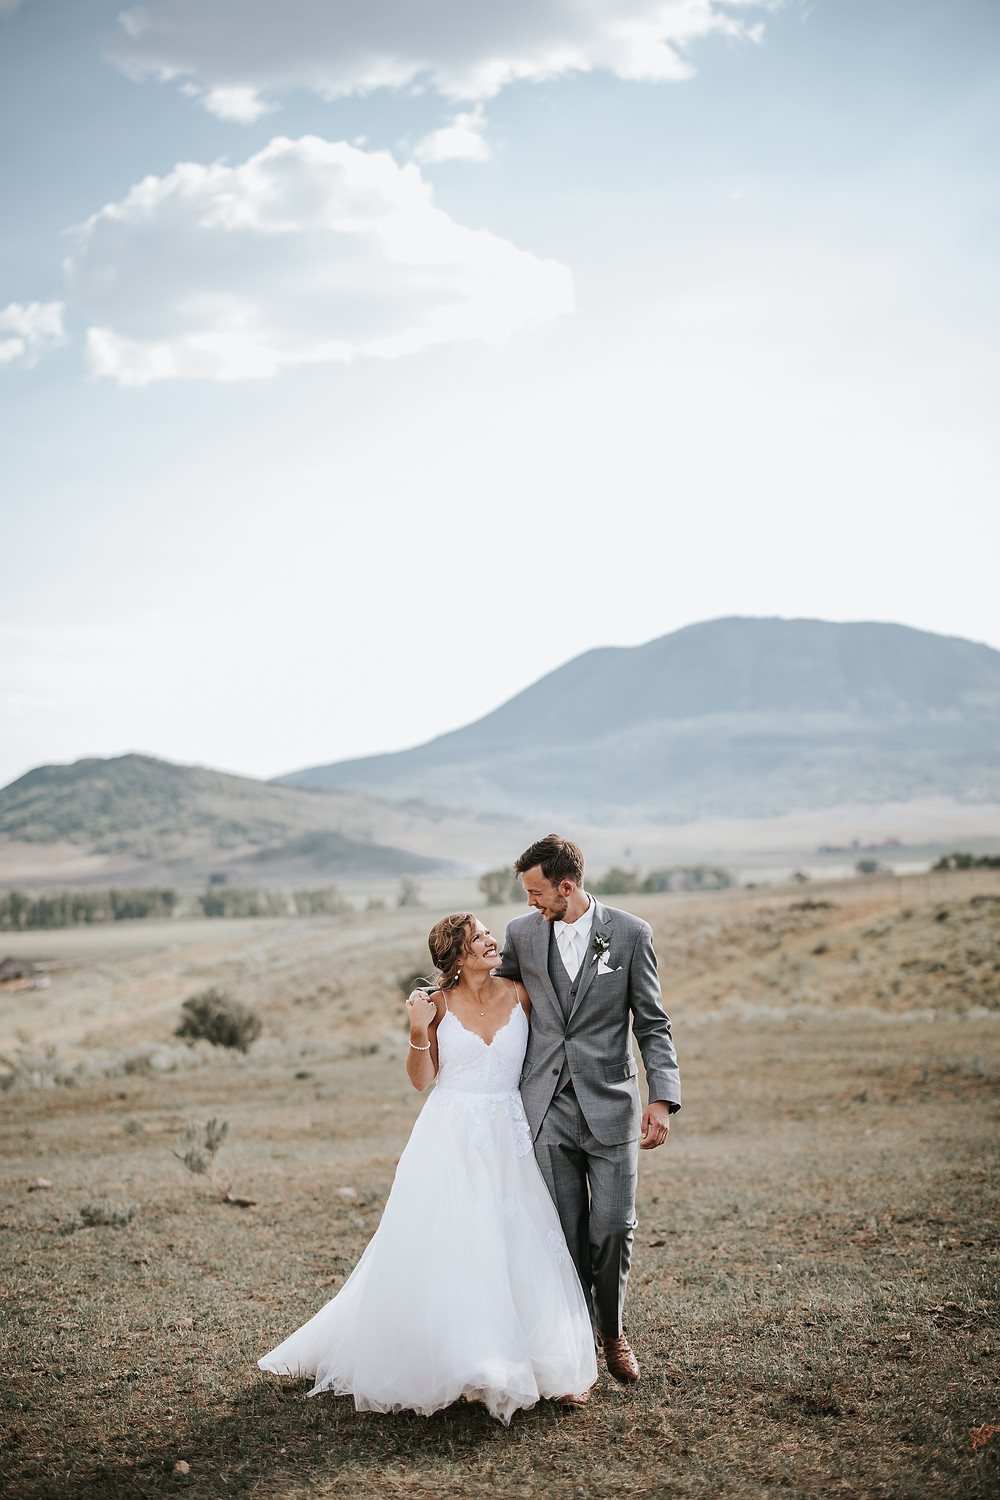 Steamboat Springs elopement couple smiling at each other while walking in the beautiful Rocky Mountain landscape